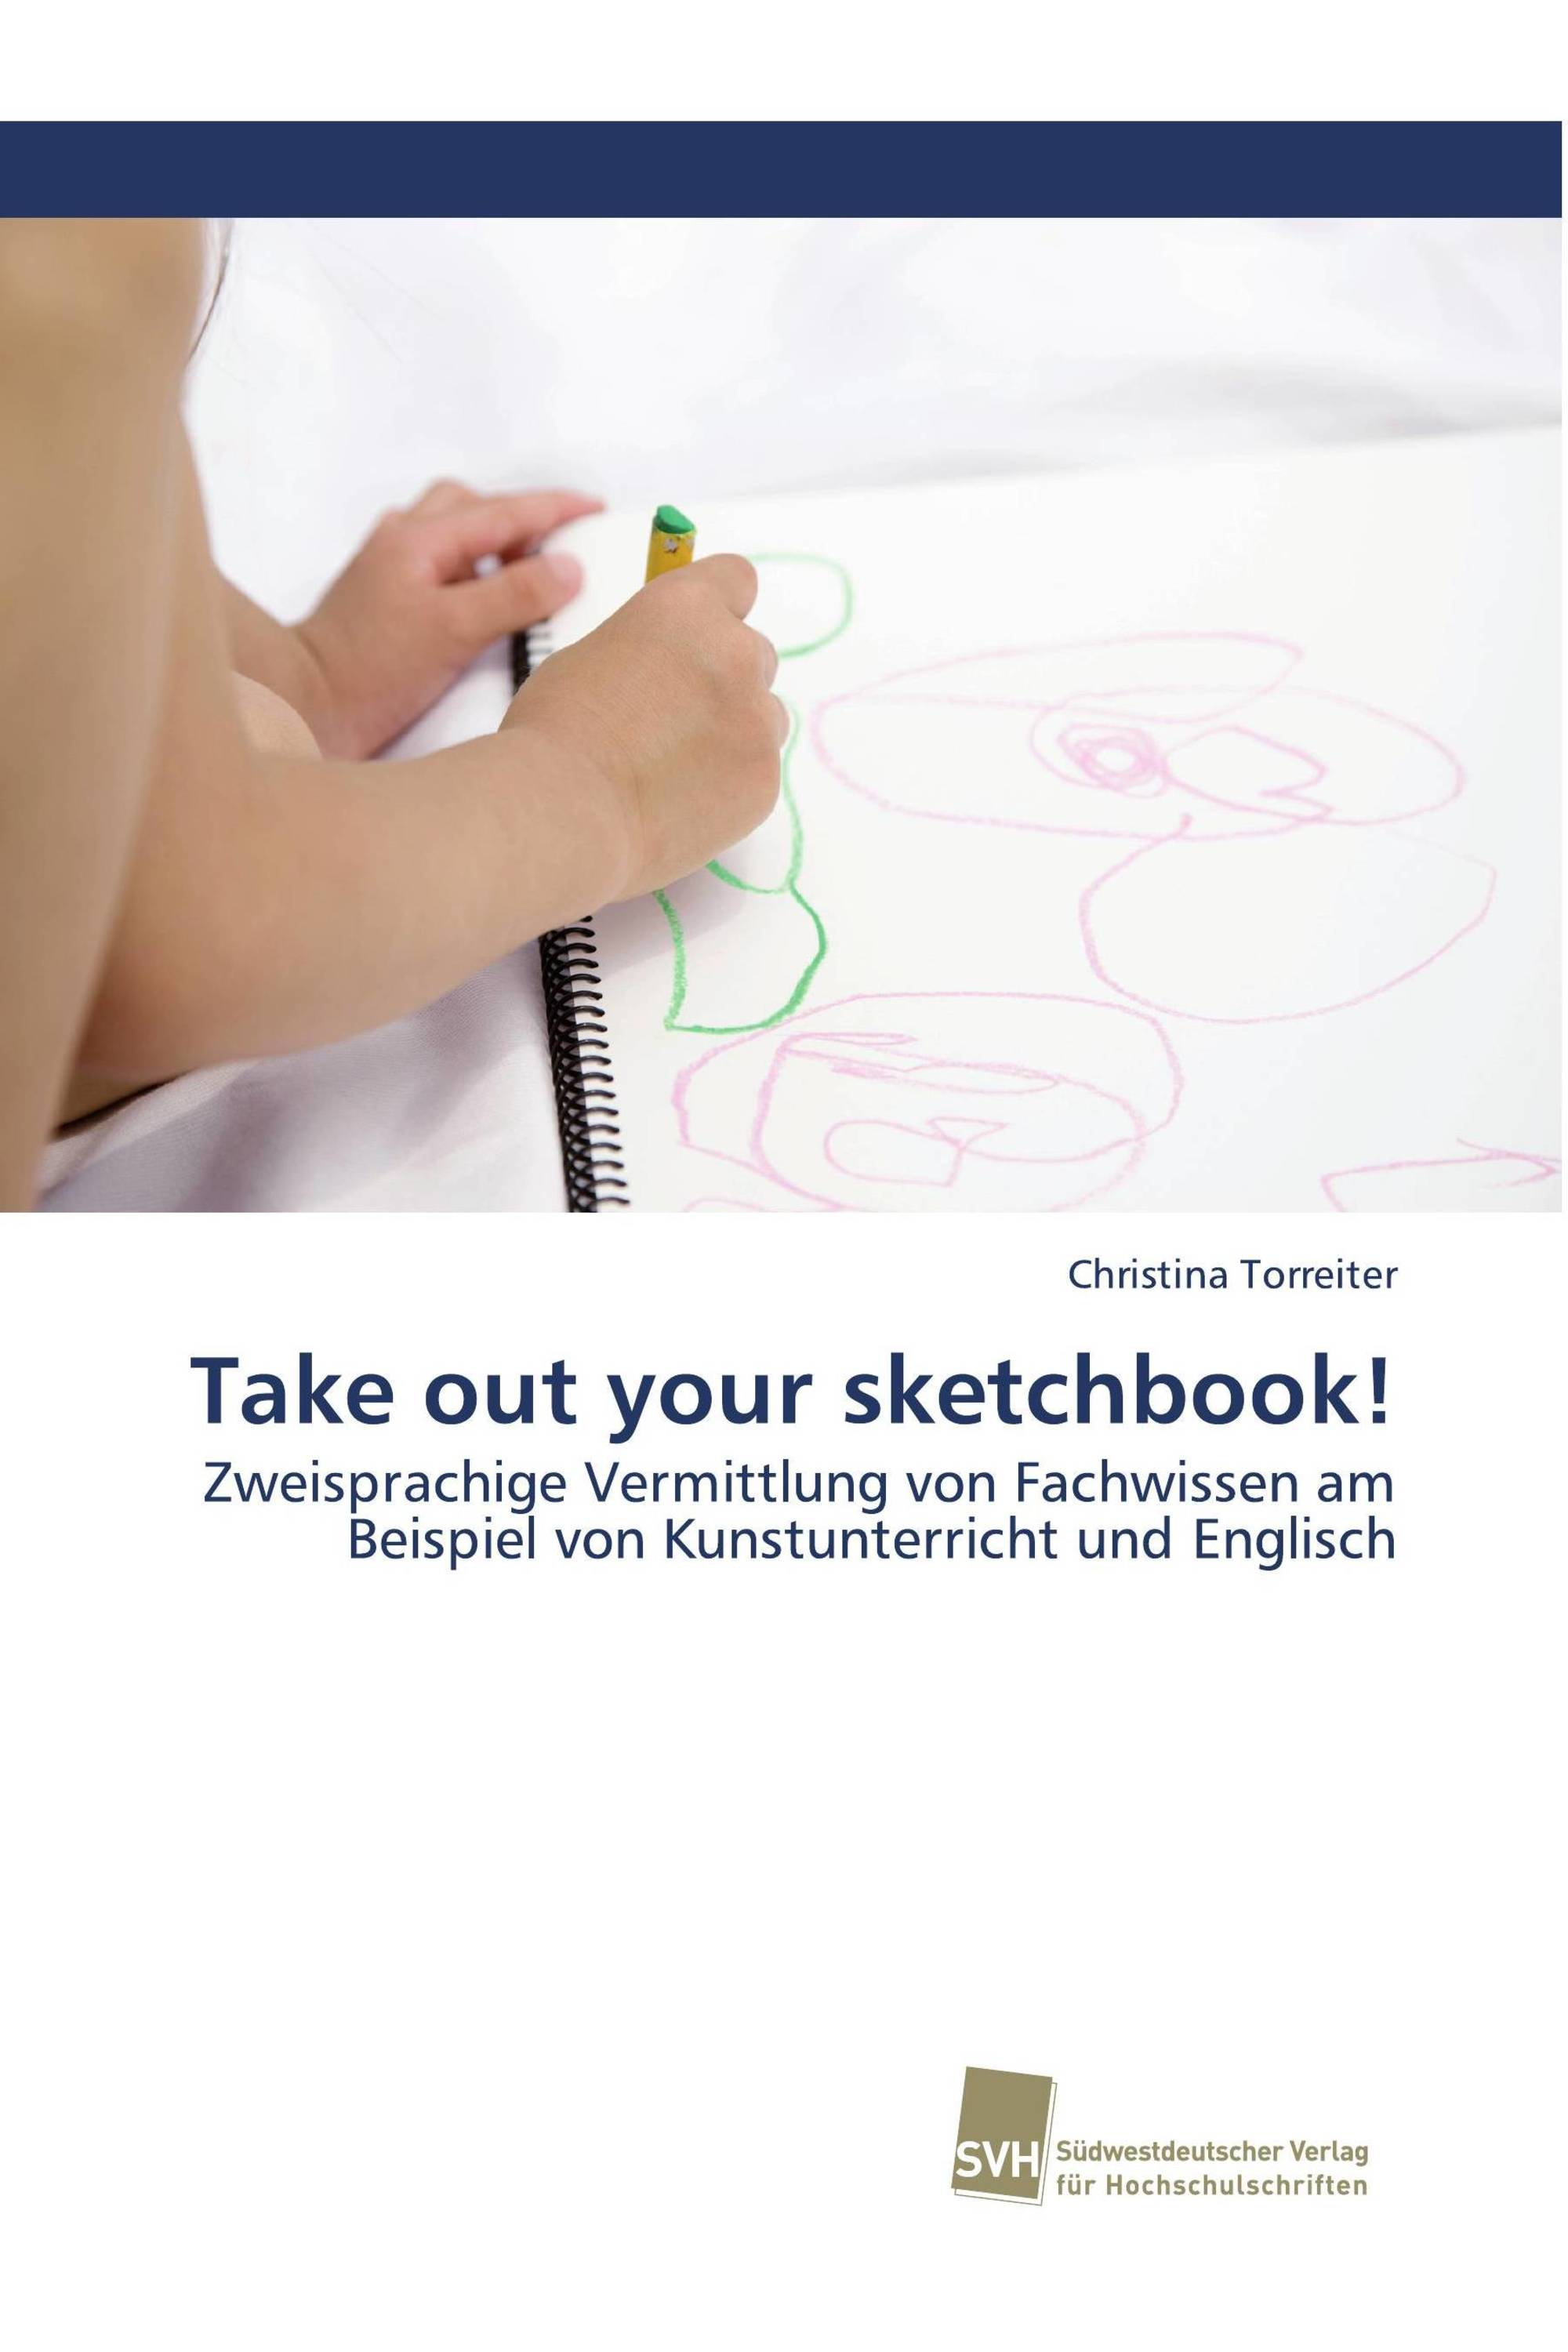 Take out your sketchbook!